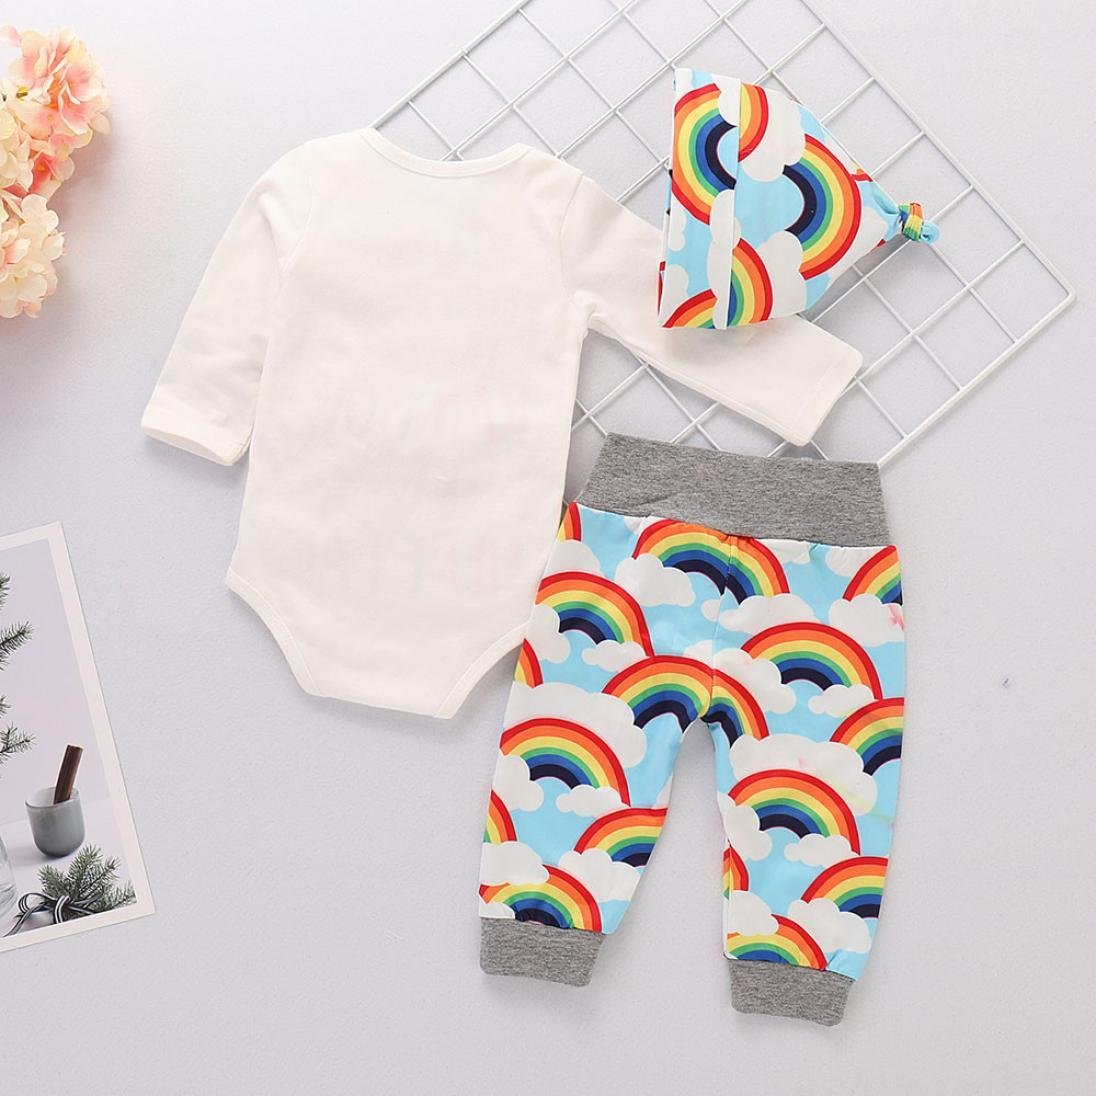 WARMSHOP Baby Girls Letter Print Rainbow Bodysuit Long Sleeve Tops Pants and Hat 3 PC Outfits Set